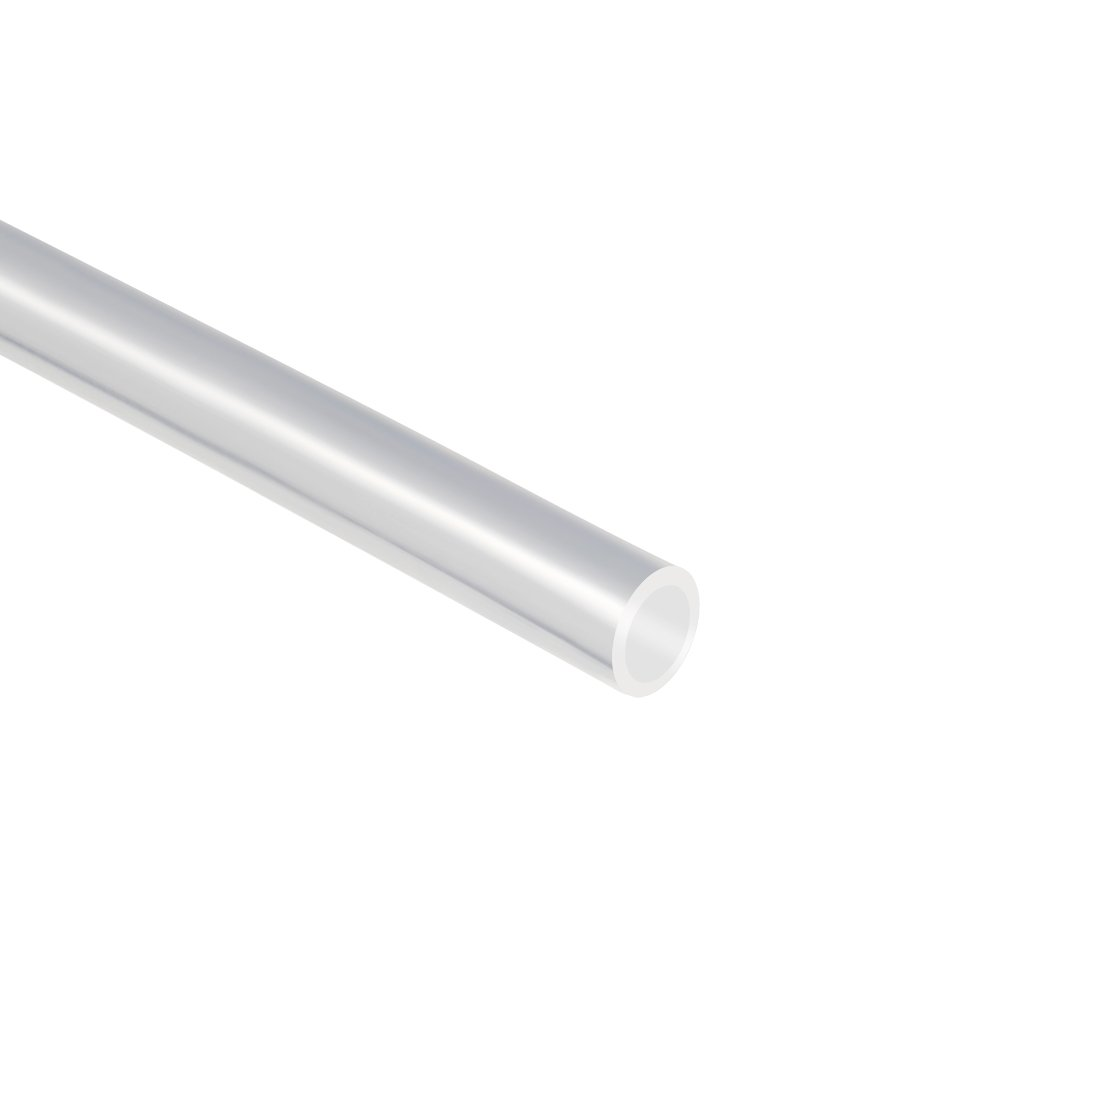 uxcell PTFE Tube Tubing 2 Meter 6.56ft Lengh Pipe 3mm ID 4mm OD for 3D Printer RepRap